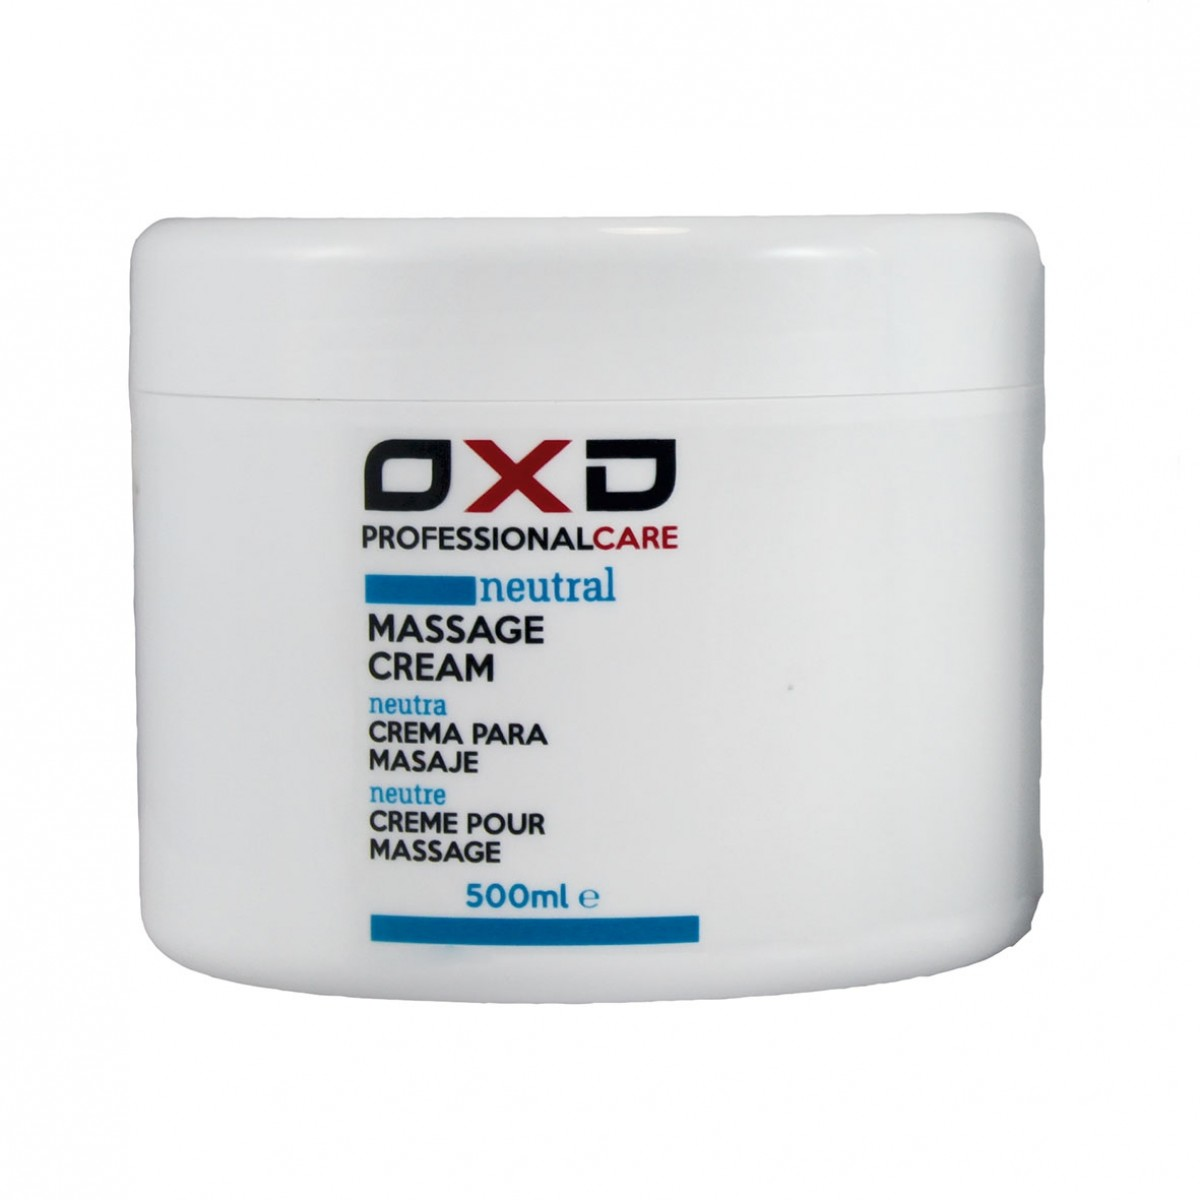 OXD Neutral massage creme 500 ml.-31